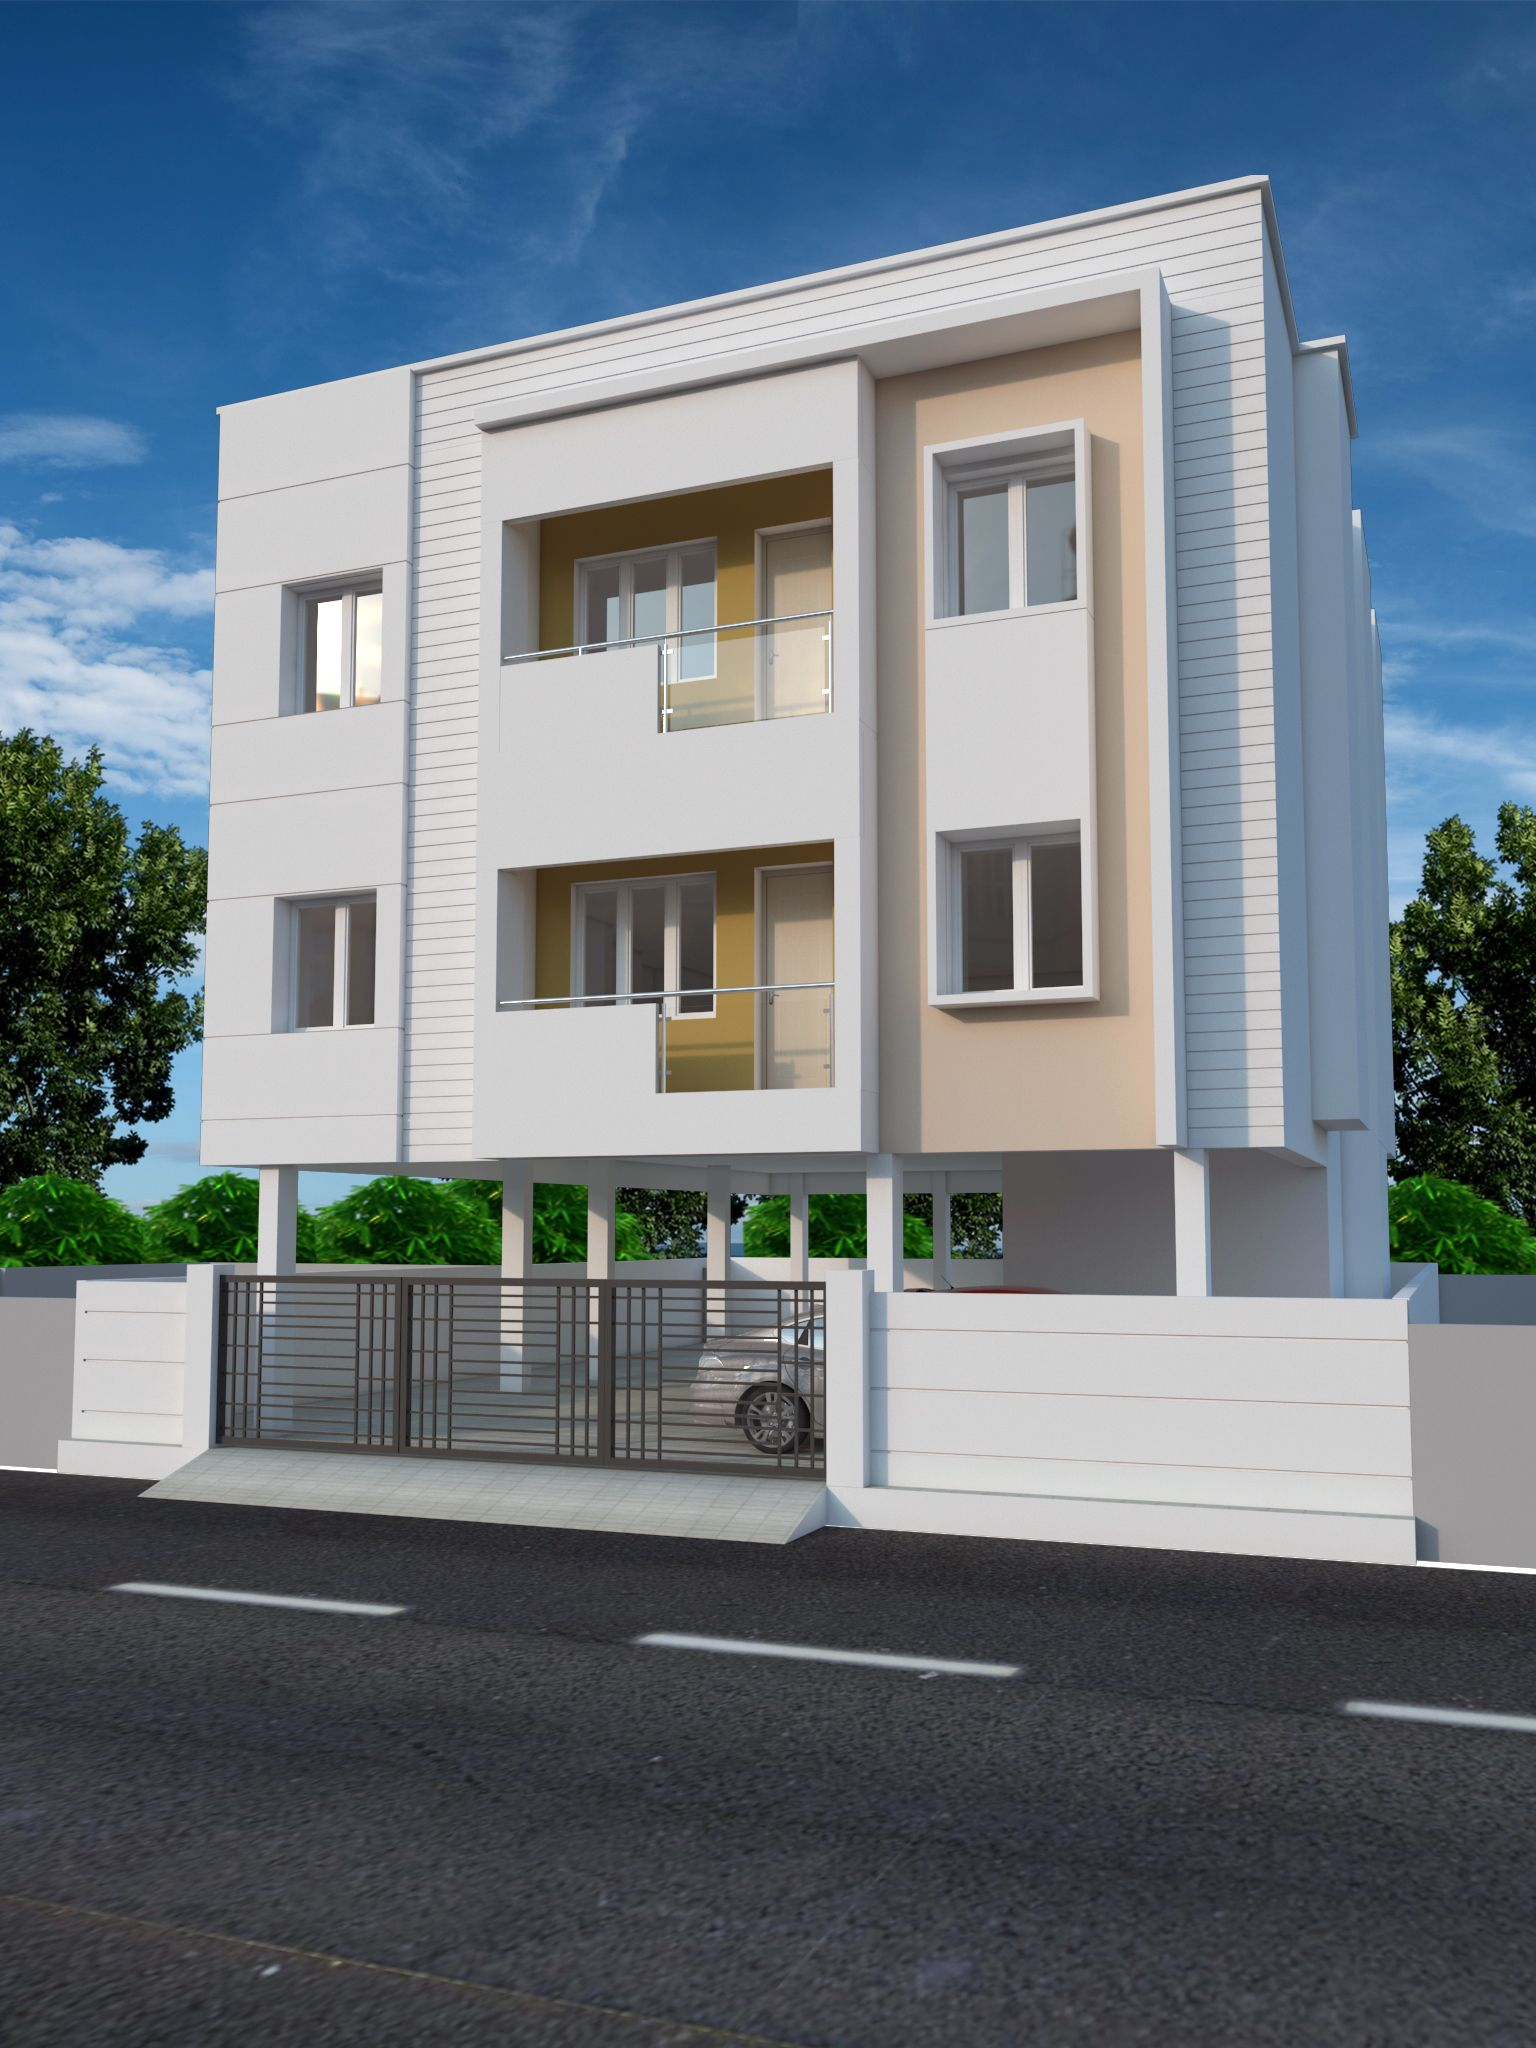 Launching 4 Unit Apartment On 27th July 2018 Stilt 2 Floors 2bhk 930 Sq Ft Each Annal Kamaraja Apartment Building Residential Apartments Apartment Plans